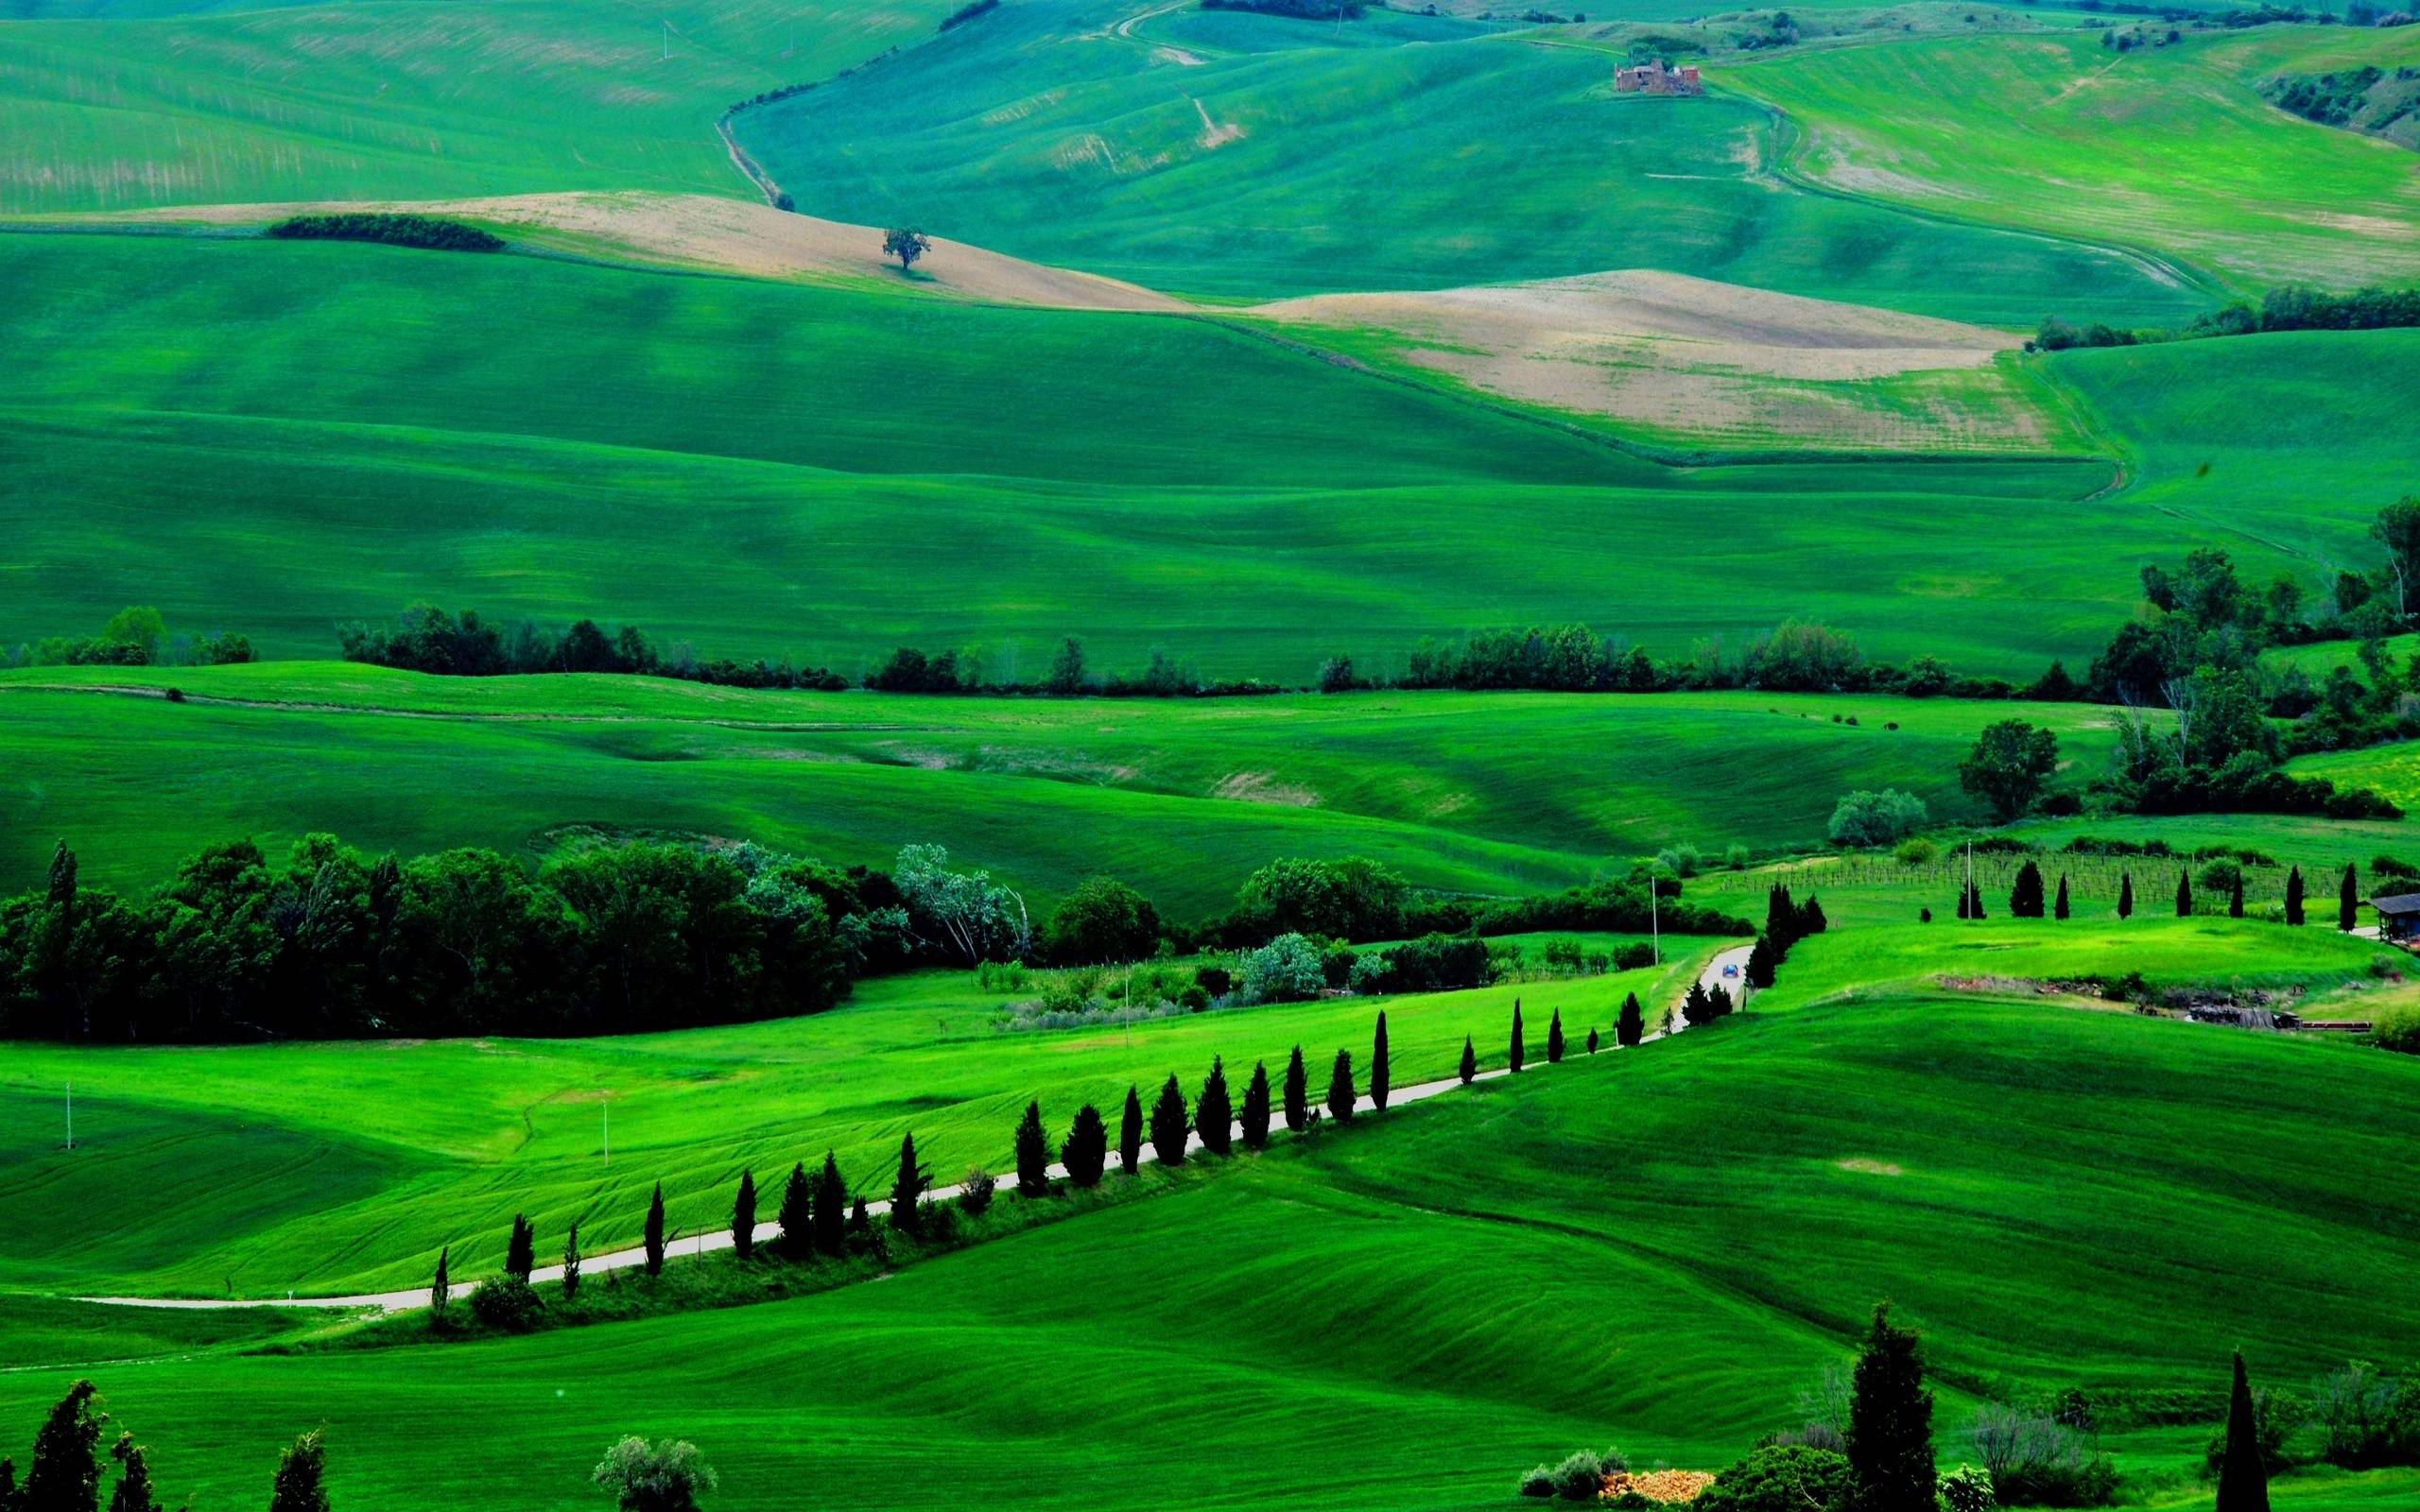 Fields trees italy road Tuscany wallpaper | 2560x1600 | 176566 ...